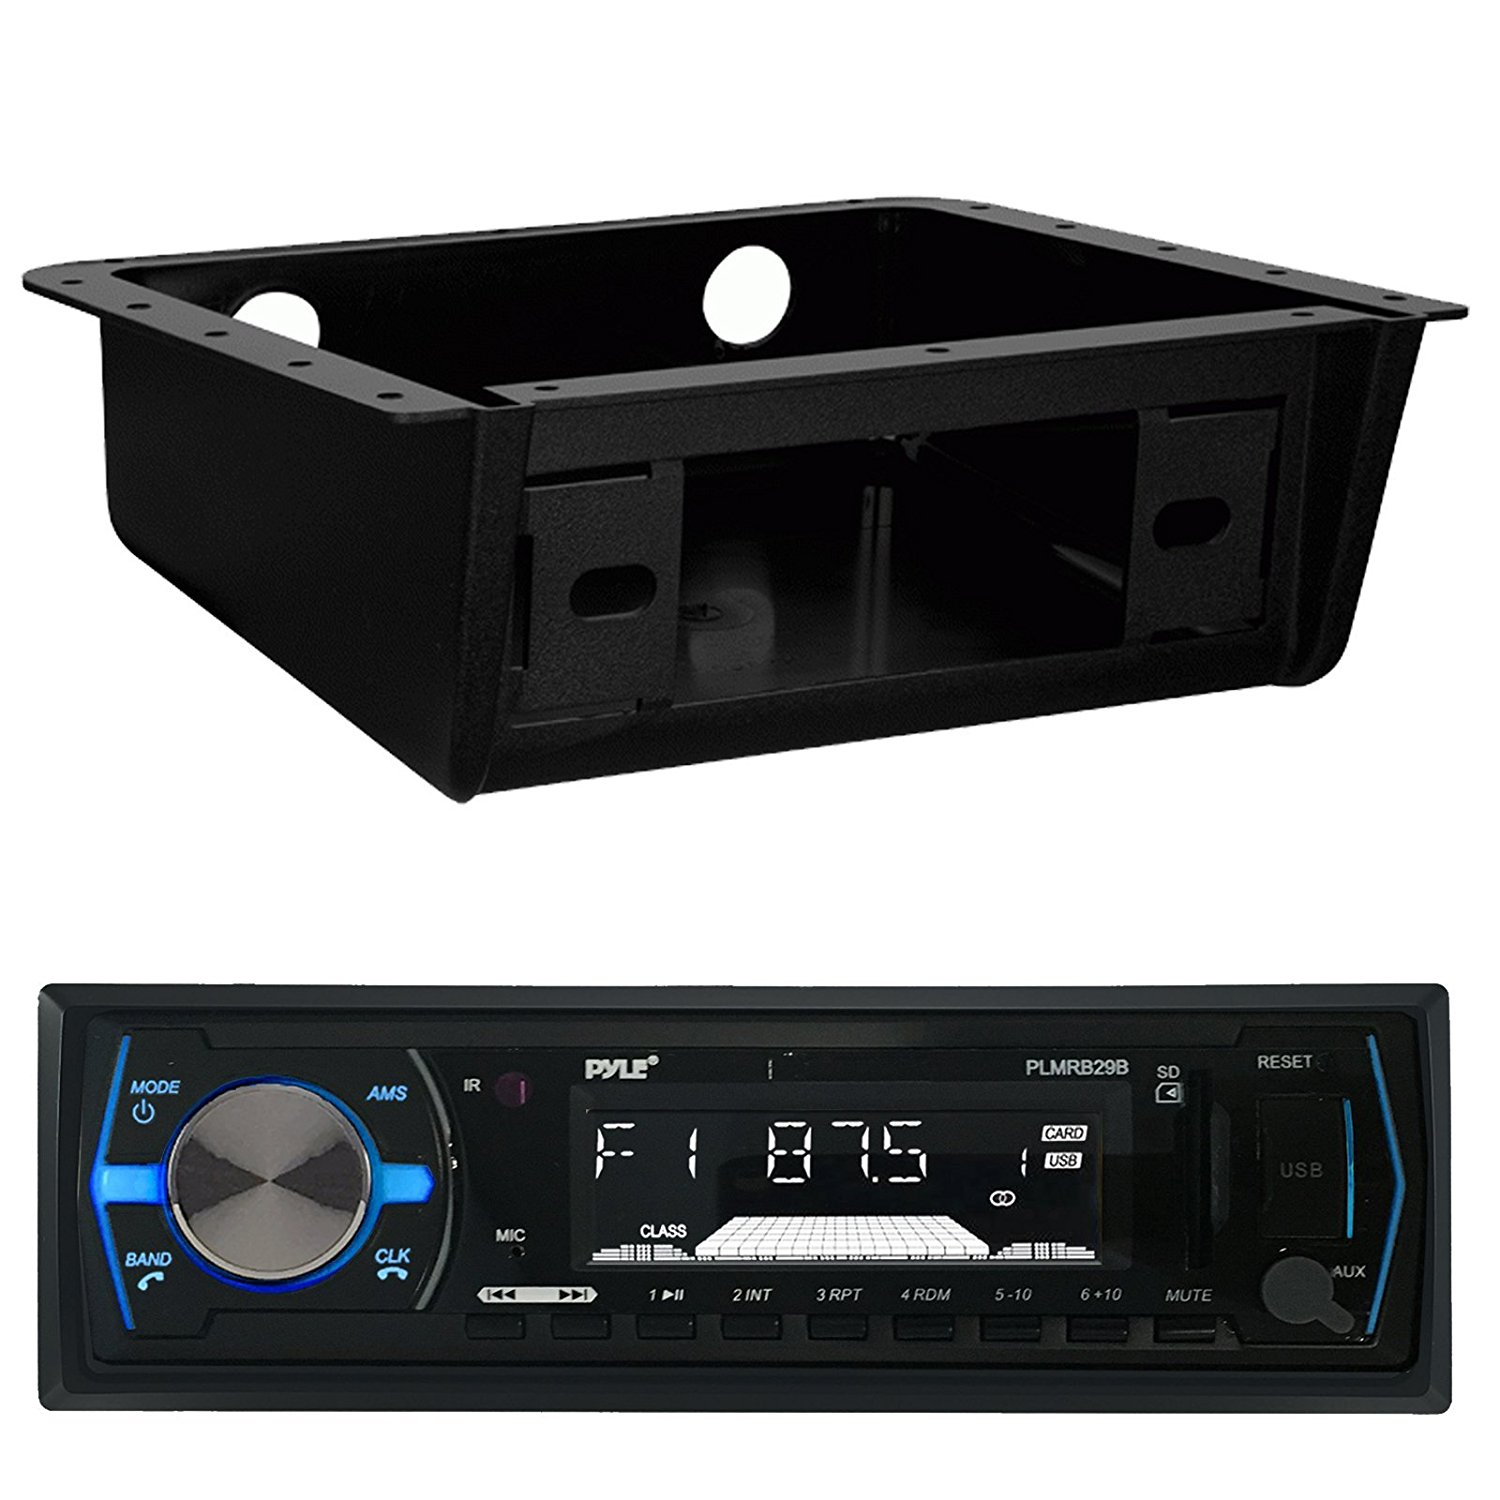 Pyle PLMRB29B Bluetooth MP3 USB AUX SD Card In-Dash Stereo AM/FM Radio Single Din Black Headunit Receiver Player Bundle Combo With Metra 99-9000 Universal Underdash Stereo Housing